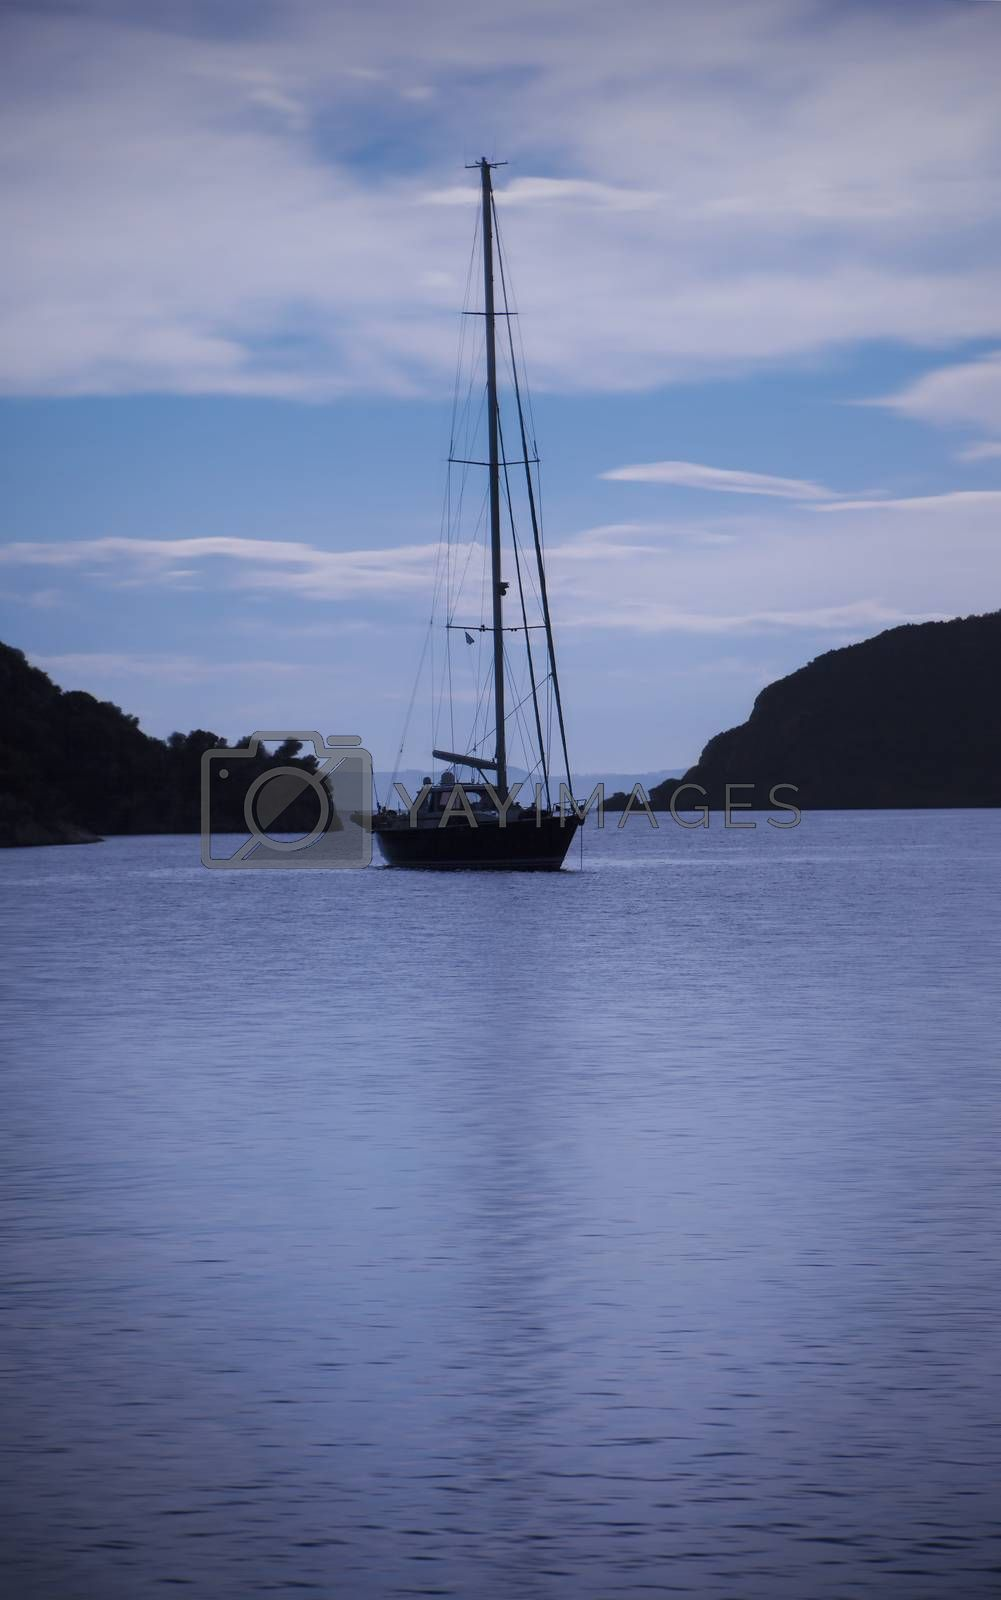 Yacht, mooring in a calm sea or ocean bay water in early blue lit morning.